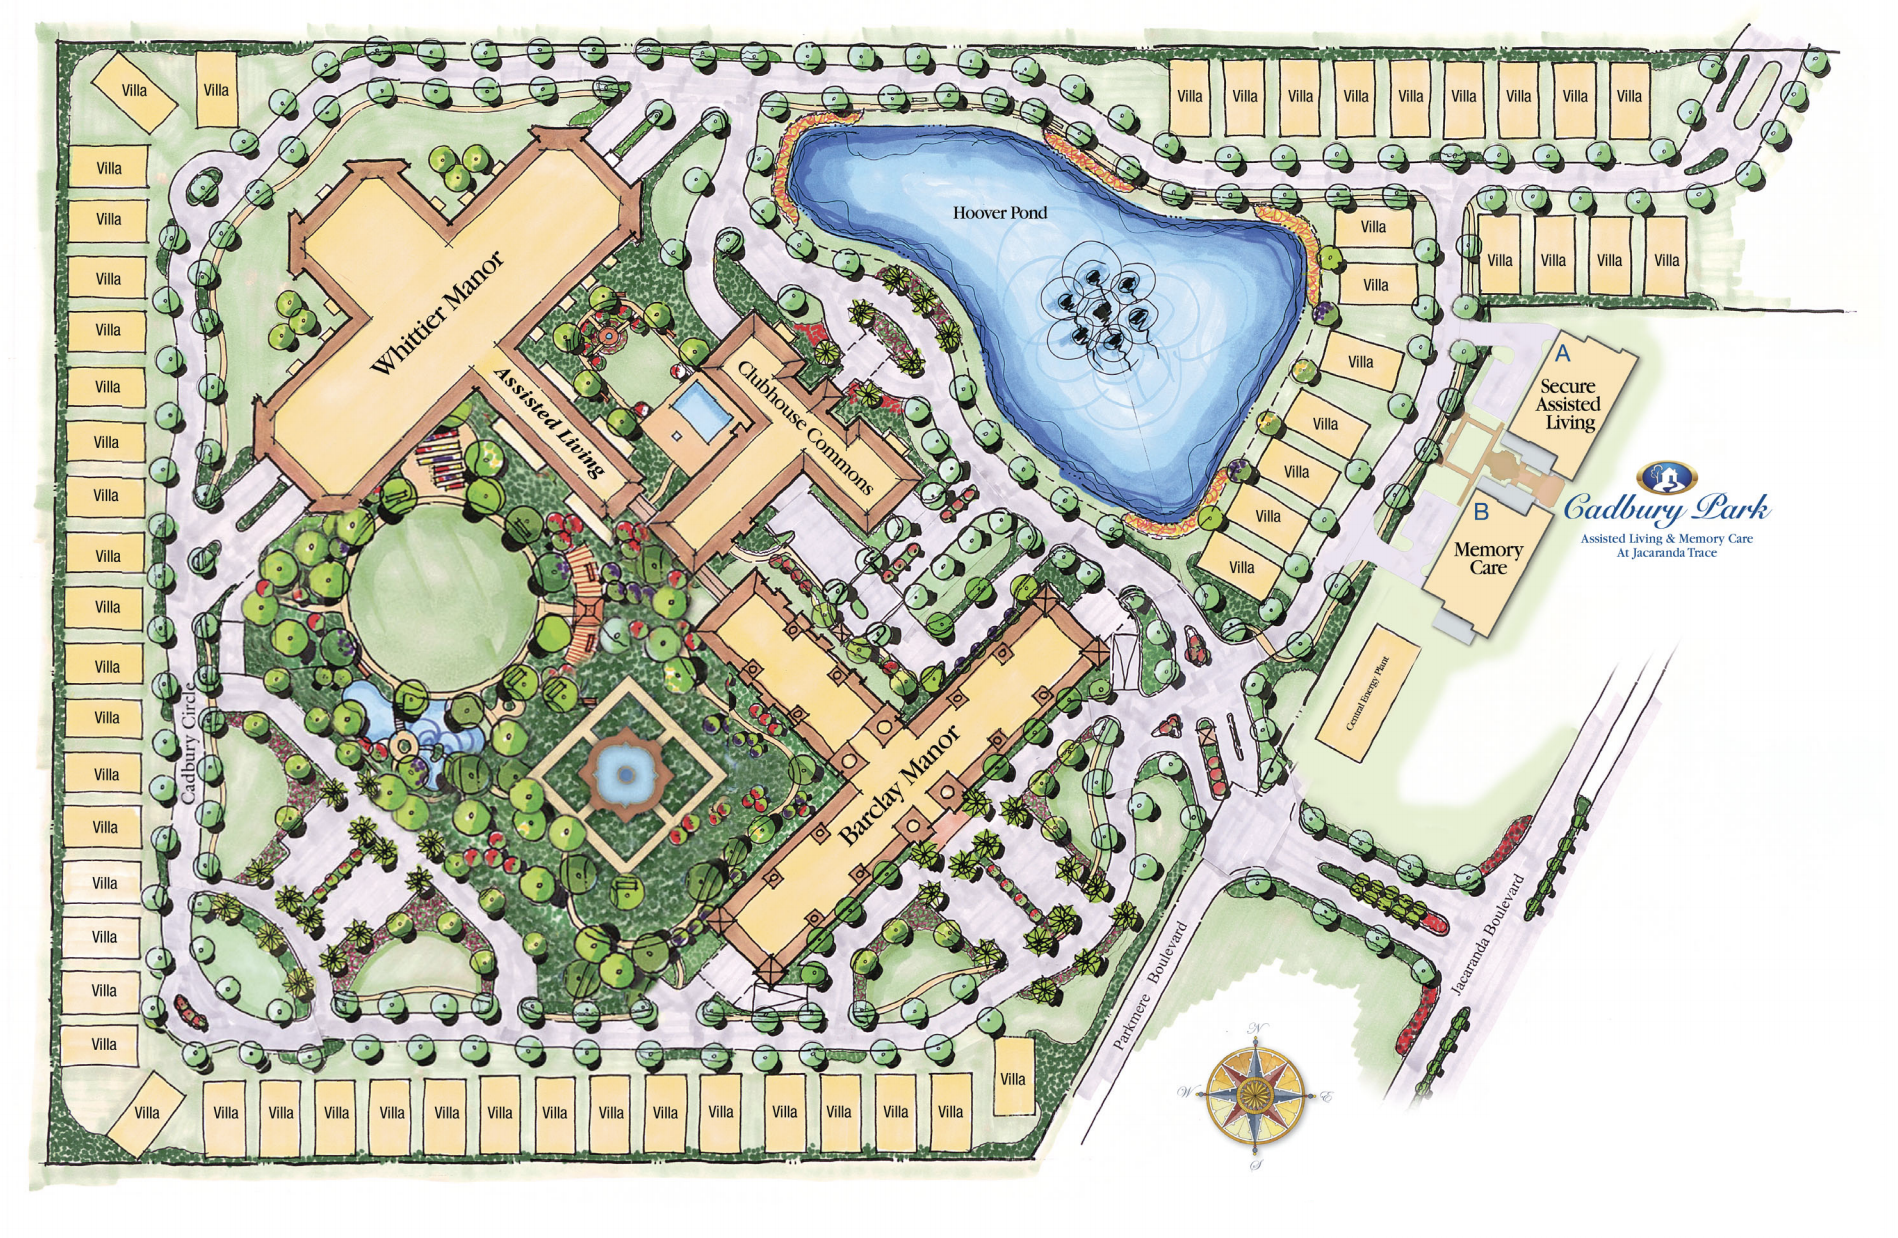 Jacaranda Trace Campus Map